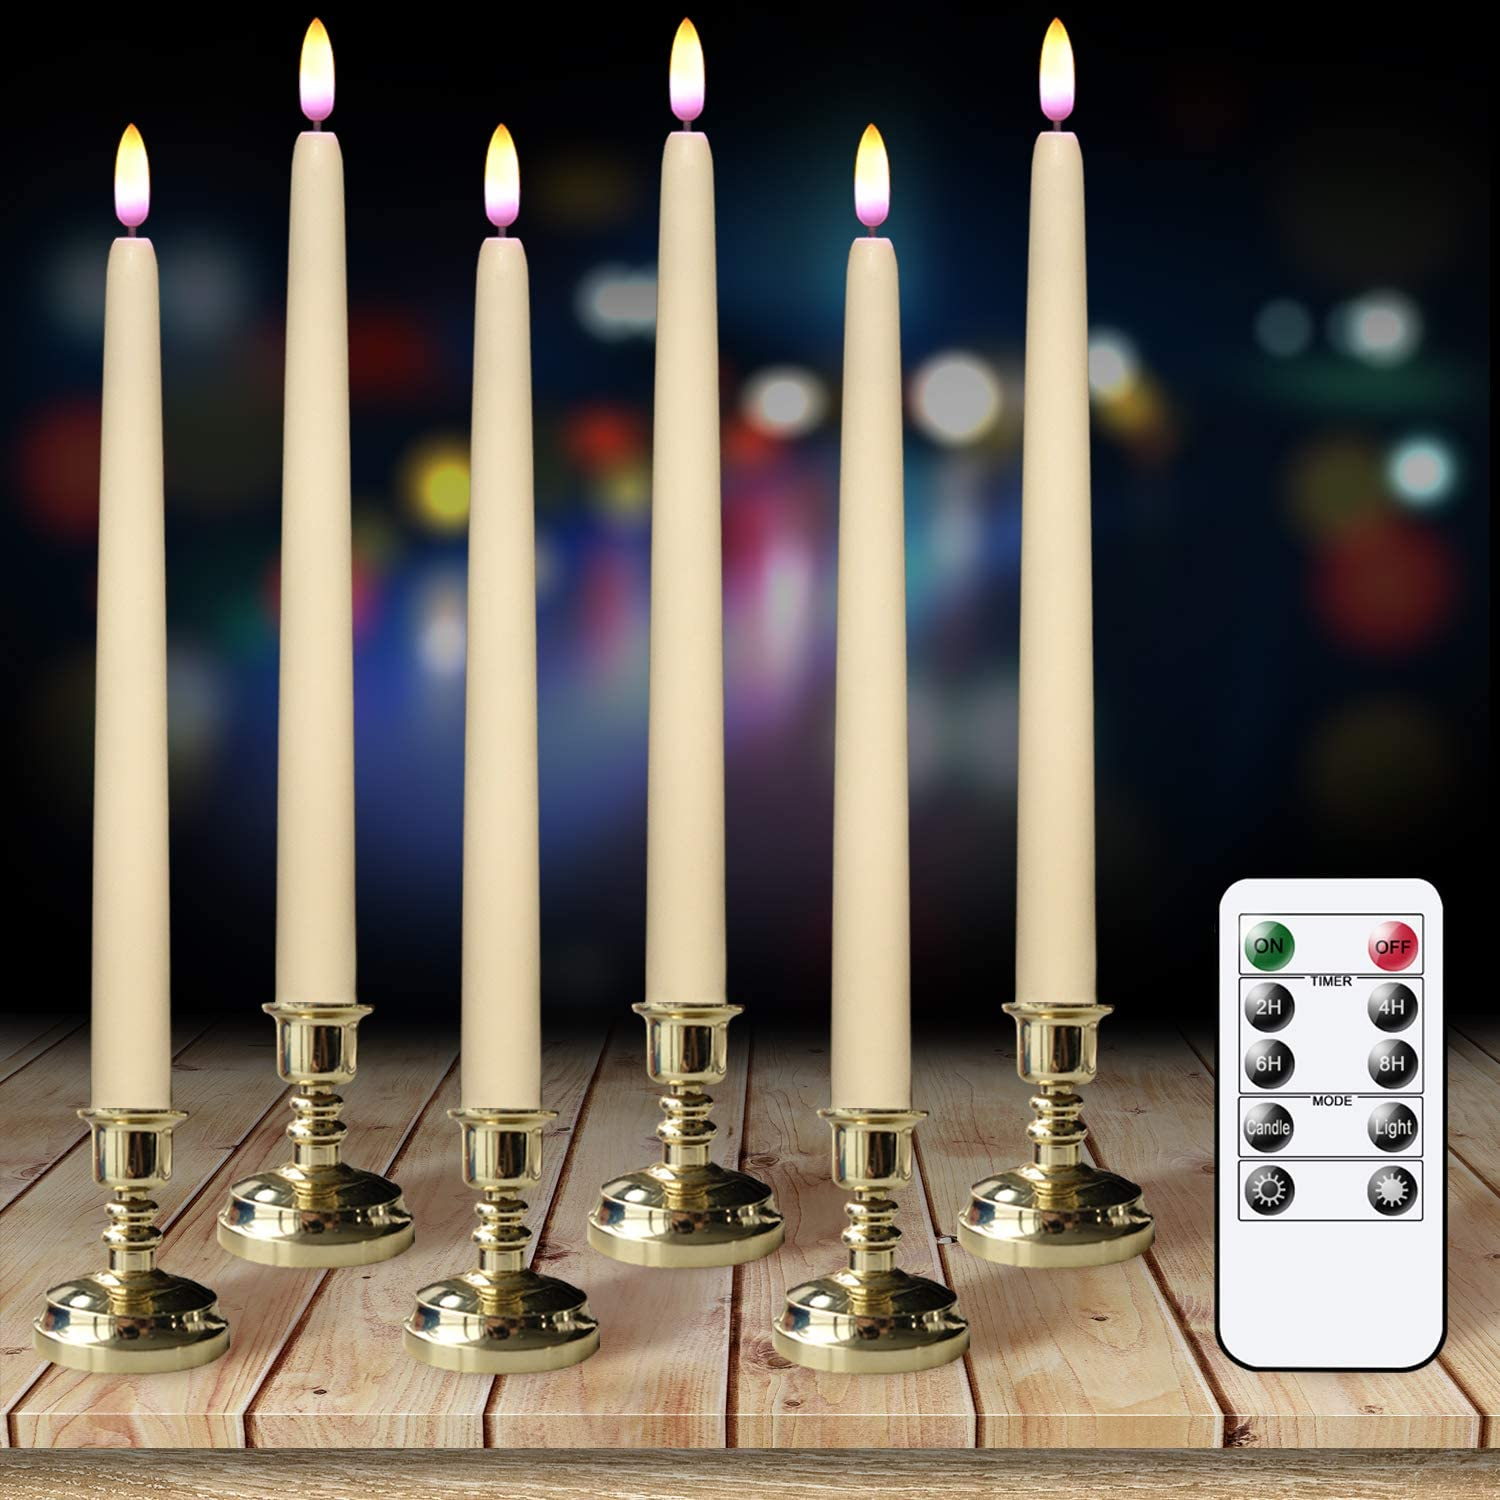 GenSwin Flameless Flickering Taper Candles with Remote Timer, Real Wax Battery Operated LED Light Window Candles with Removable Gold Candle Holders Pack of 6 Christmas Home Decor(Ivory)